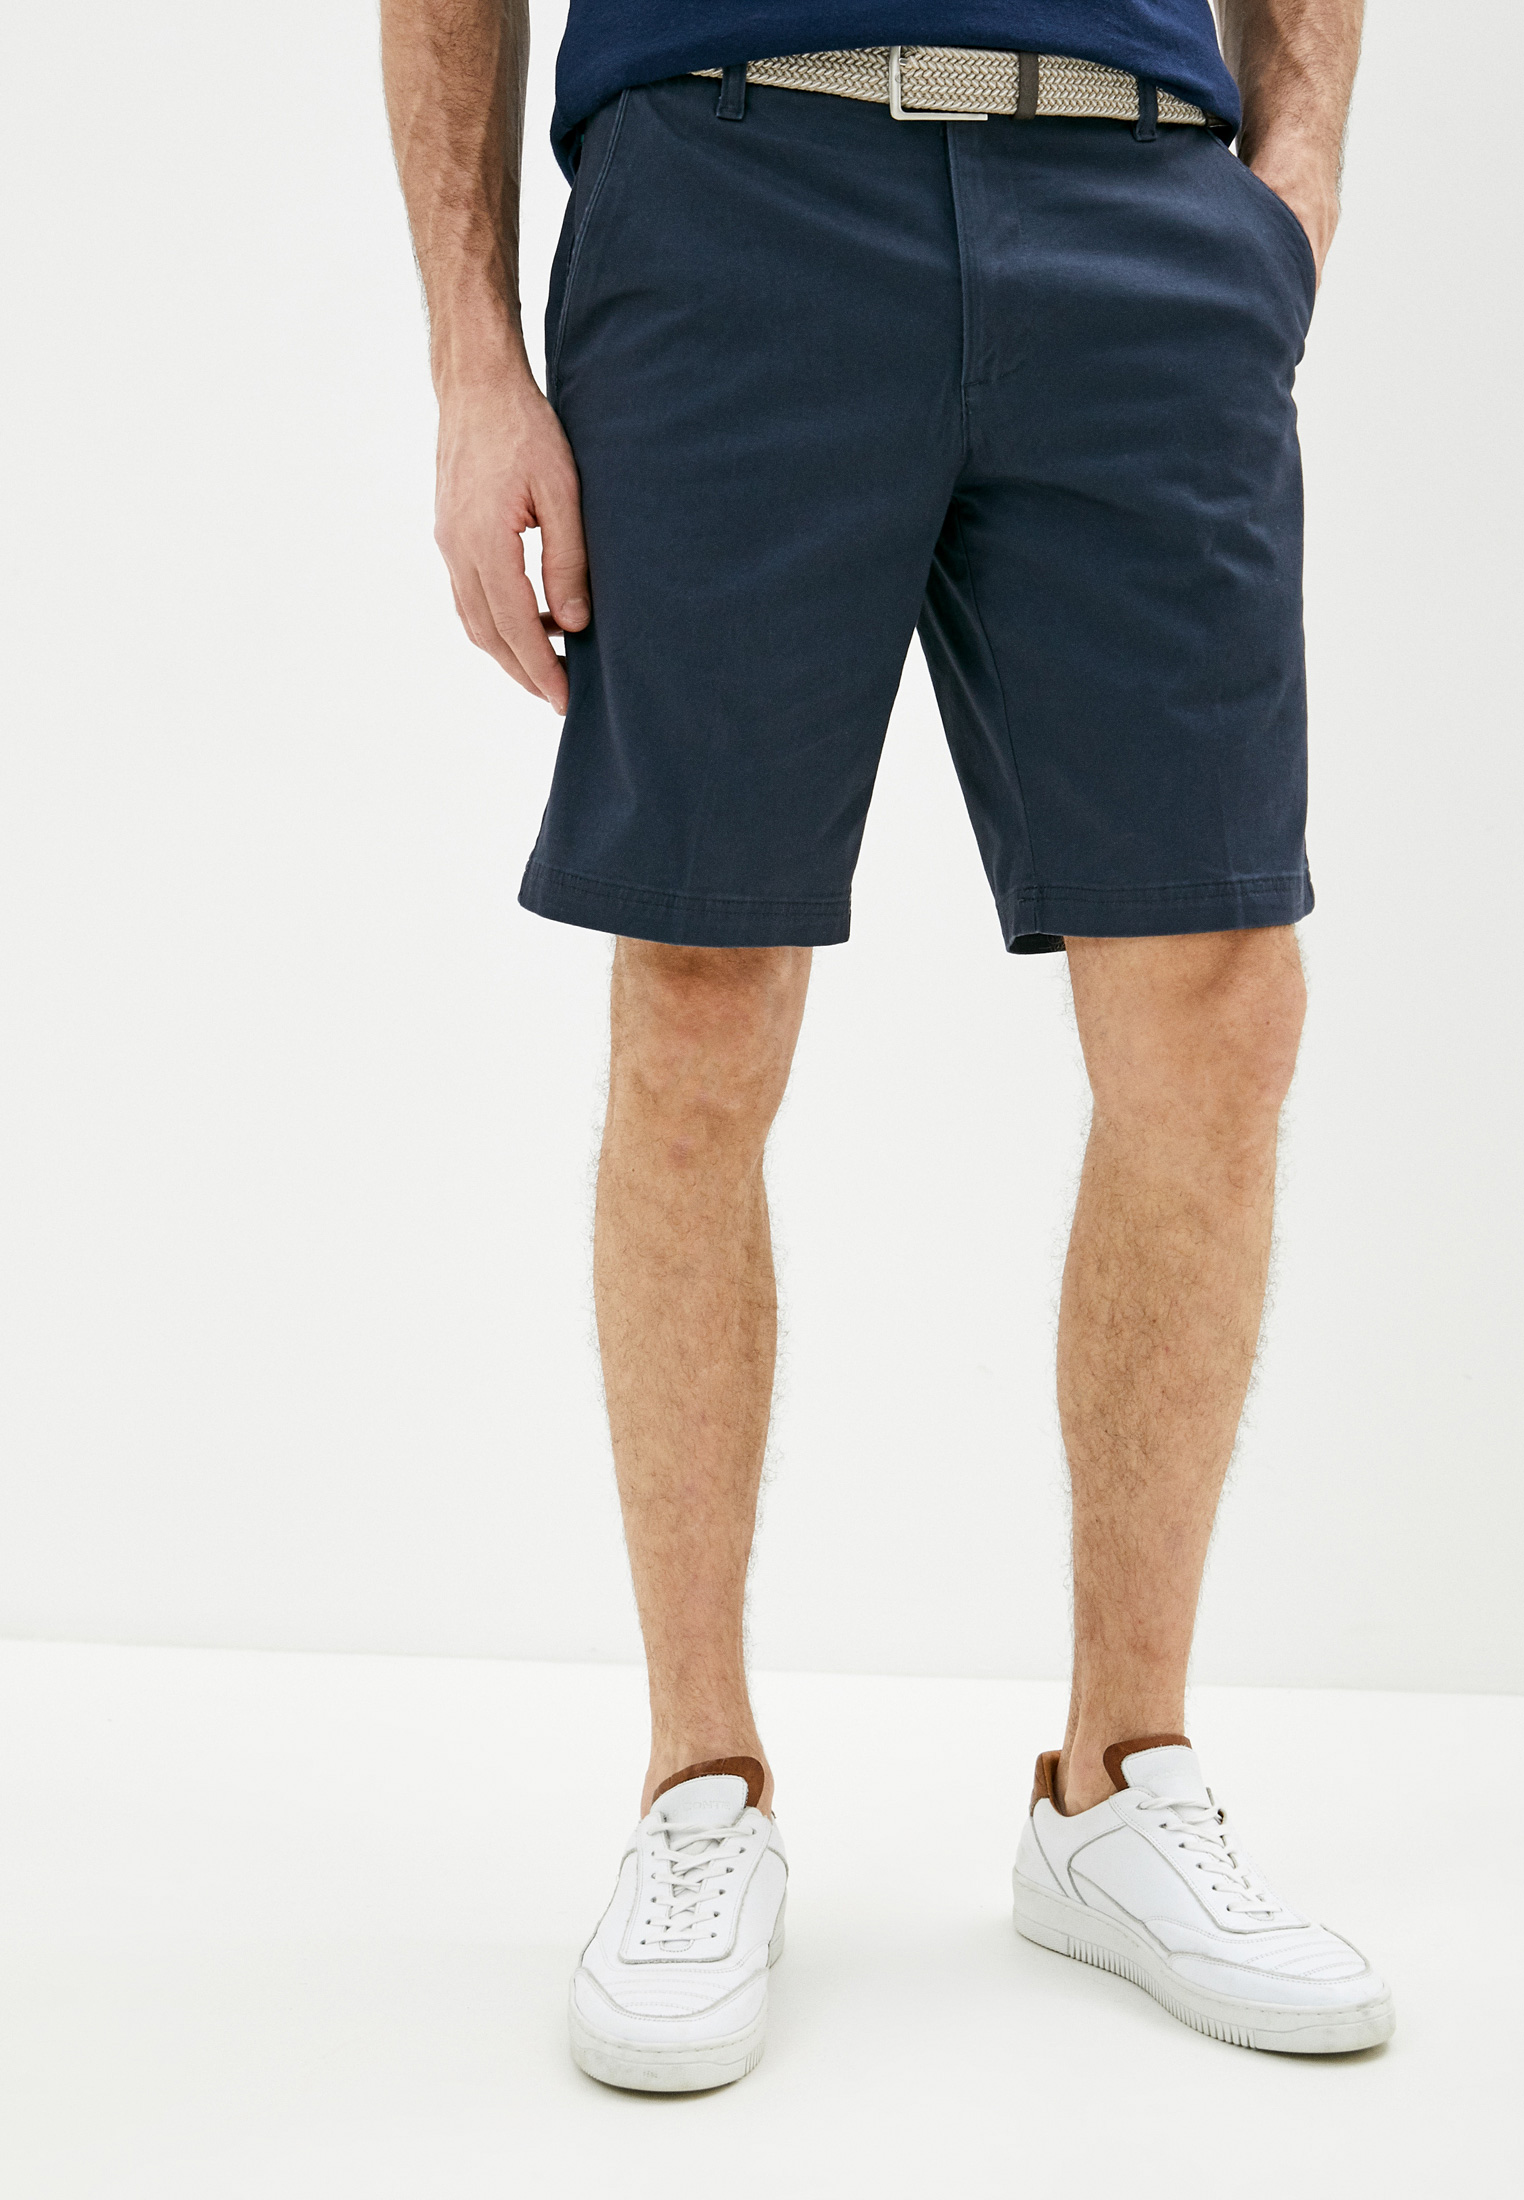 Original Penguin Check Swimming Shorts Sml or Med Total Eclipse